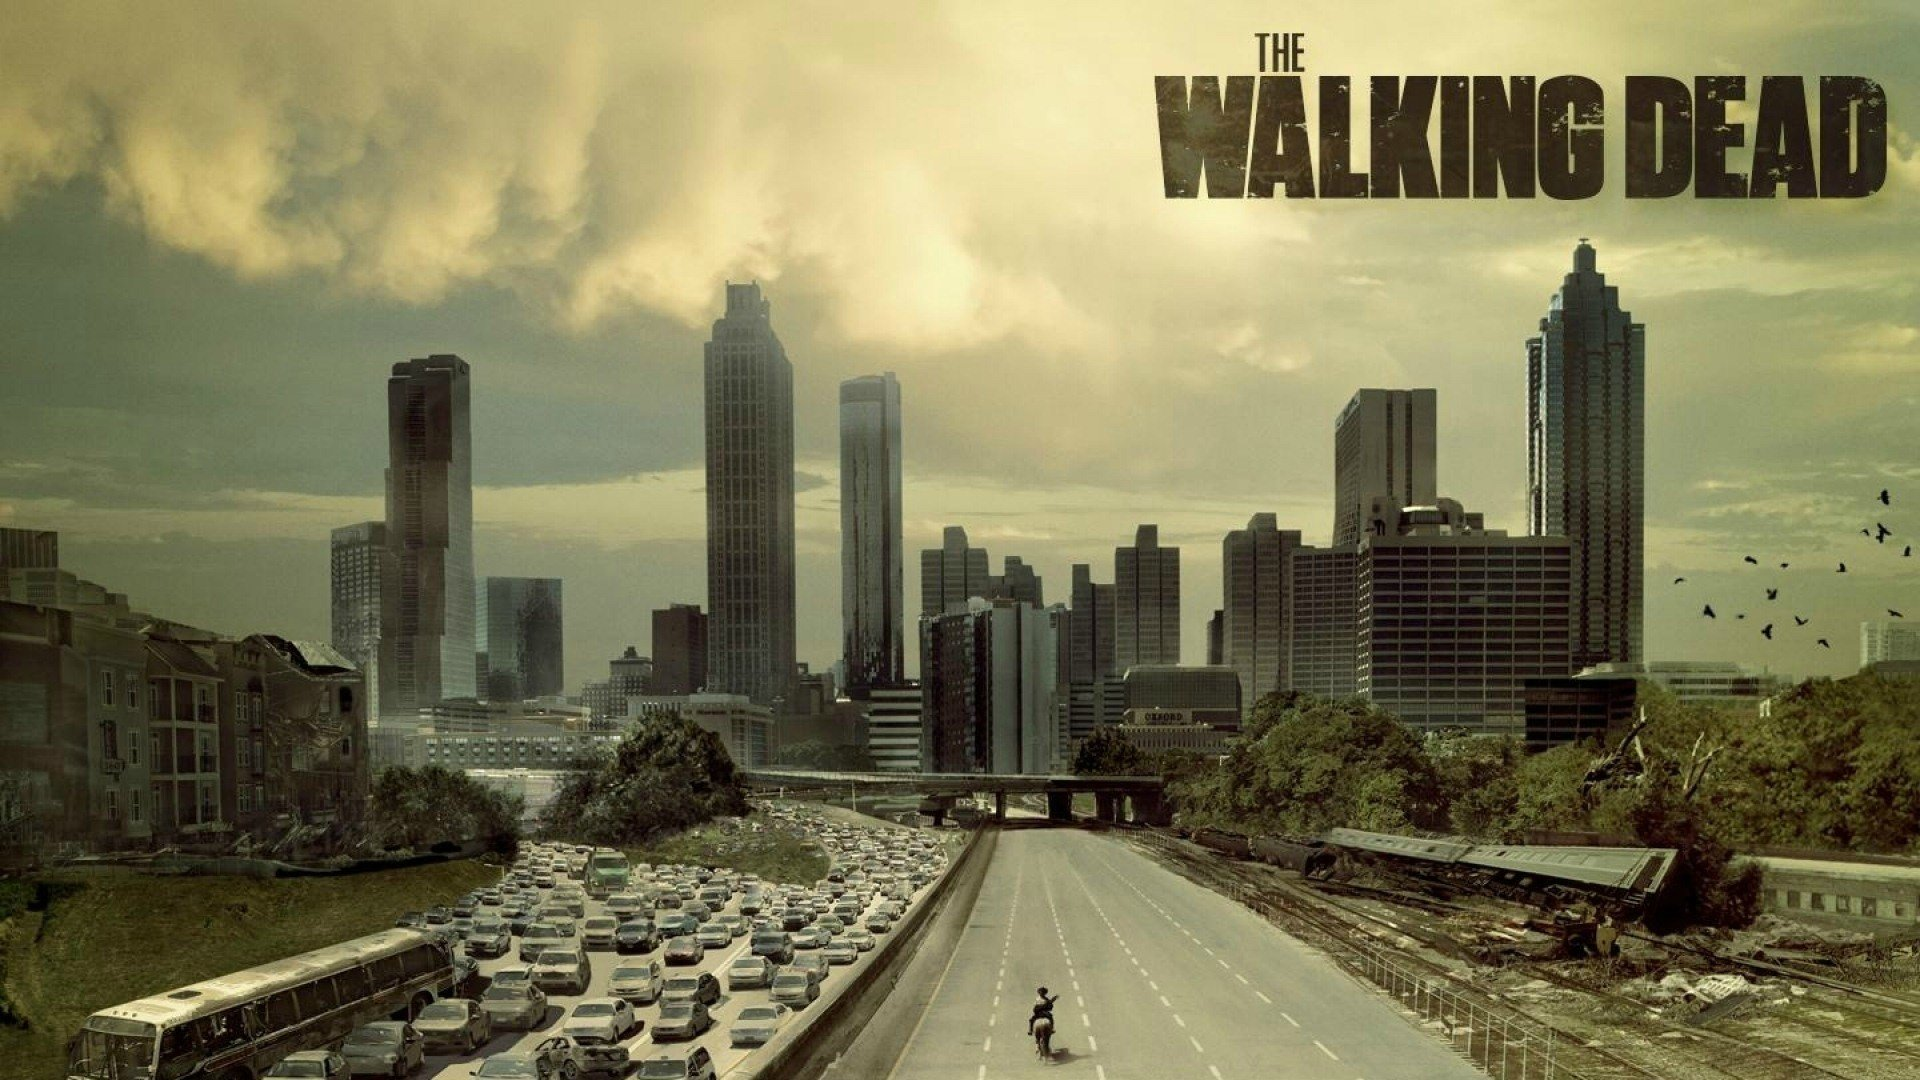 The Walking Dead Wallpapers 1920x1080 Full Hd 1080p